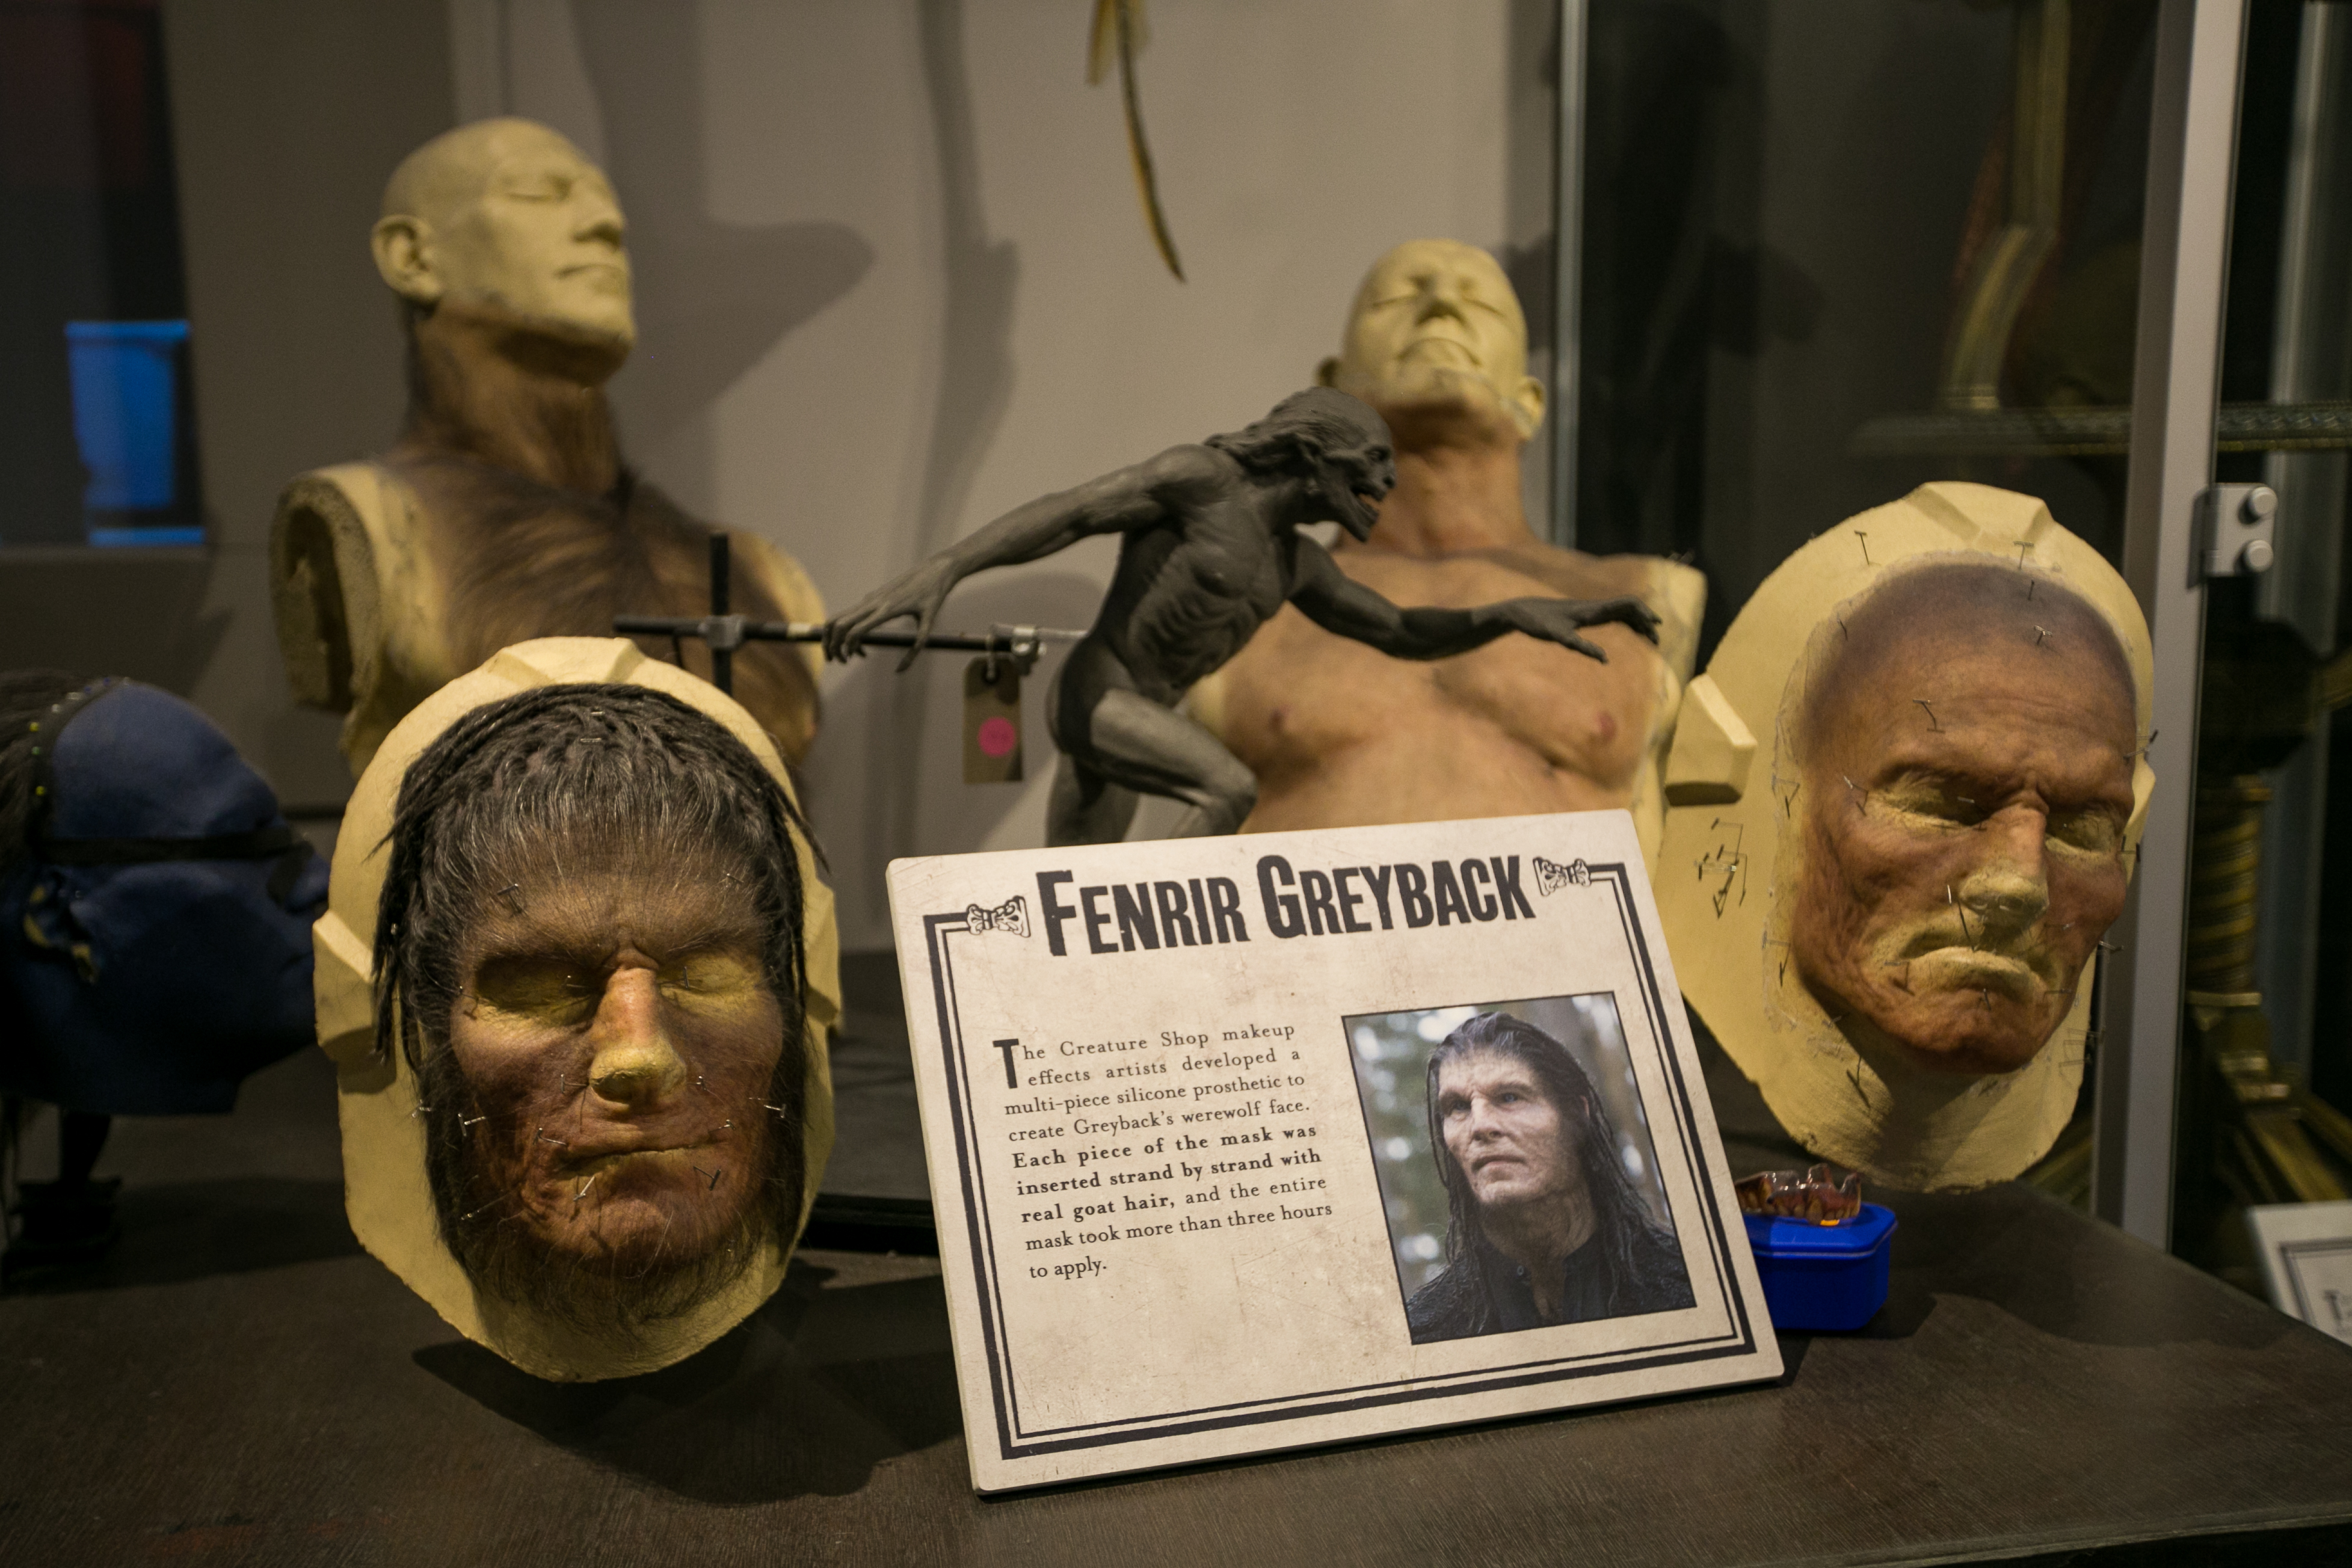 harry-potter-studio-tour-fenier-greyback